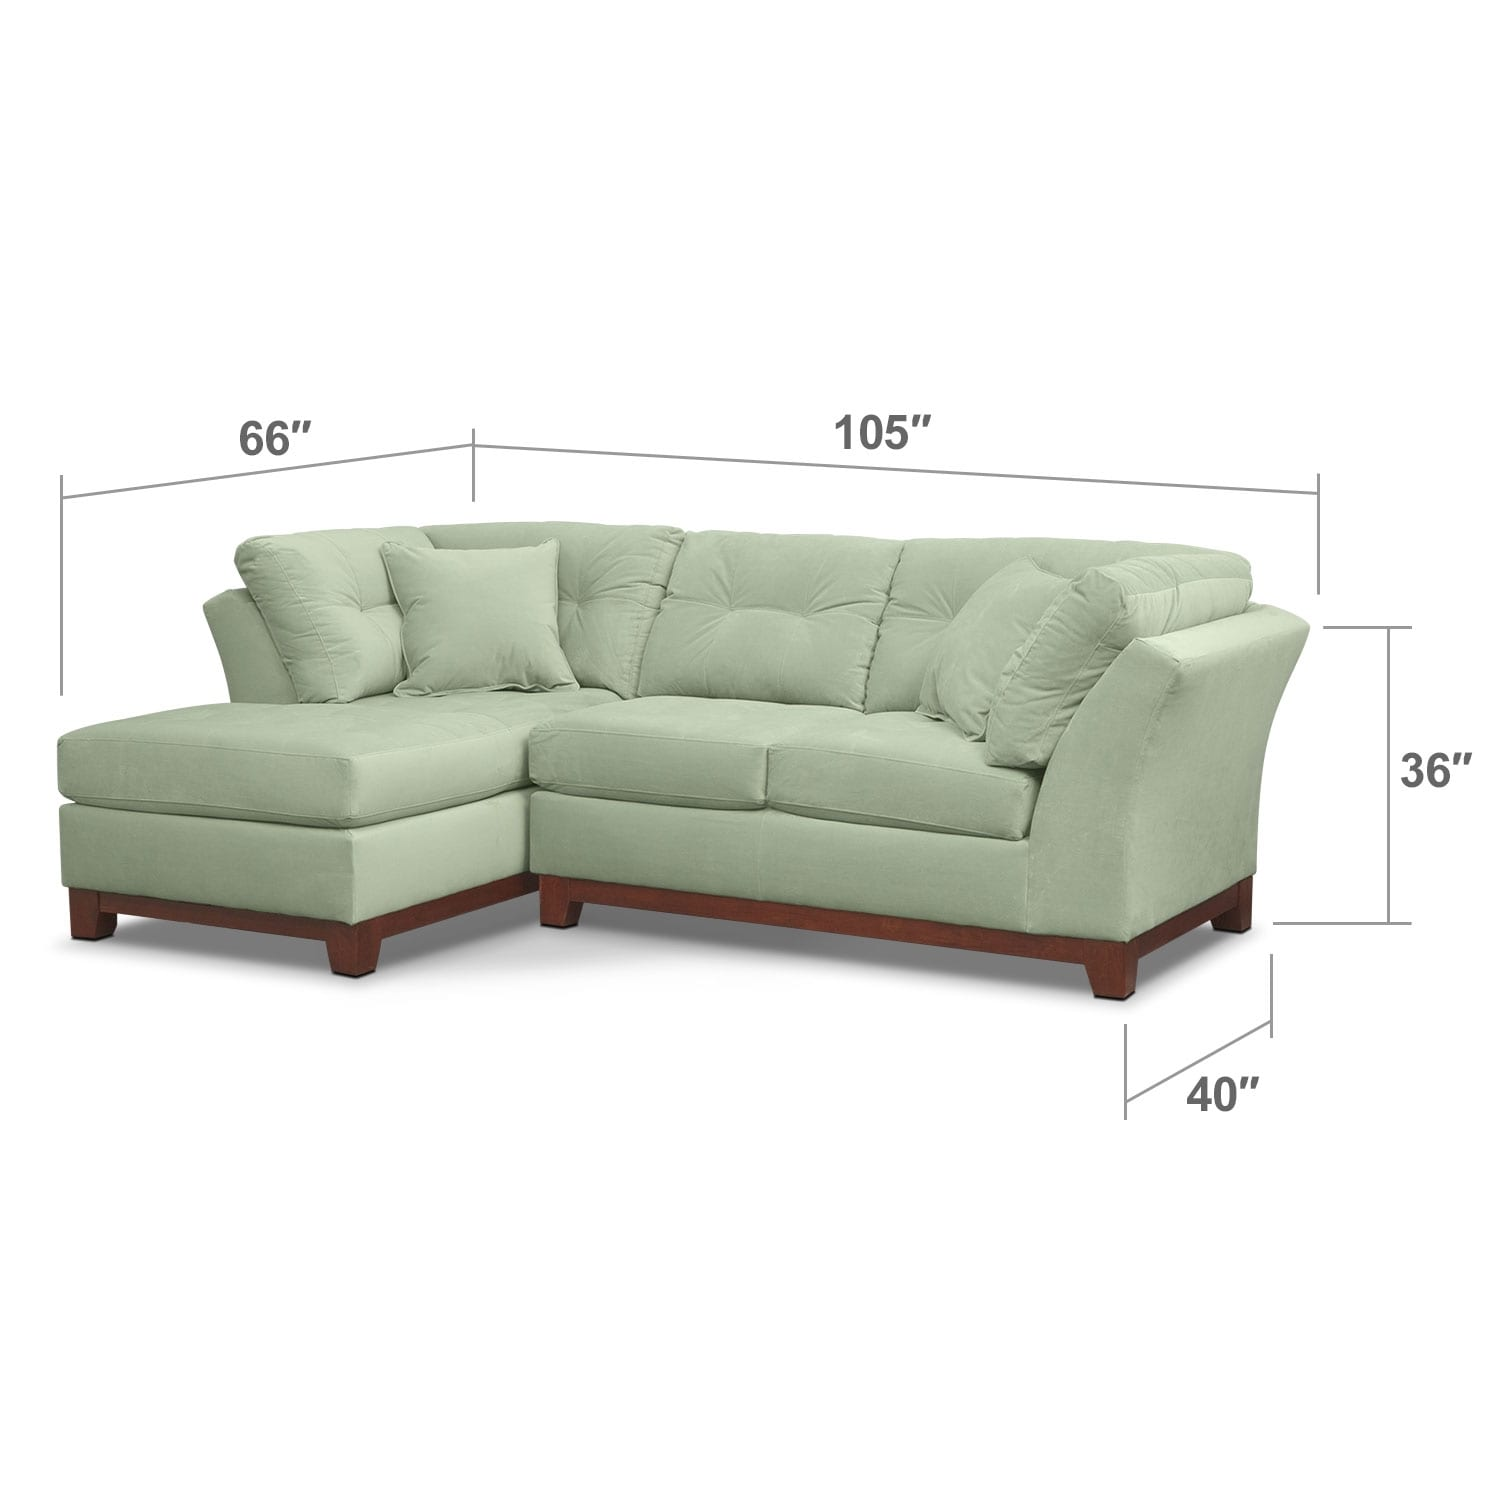 Living Room Furniture - Solace 2-Piece Left-Facing Chaise Sectional - Spa